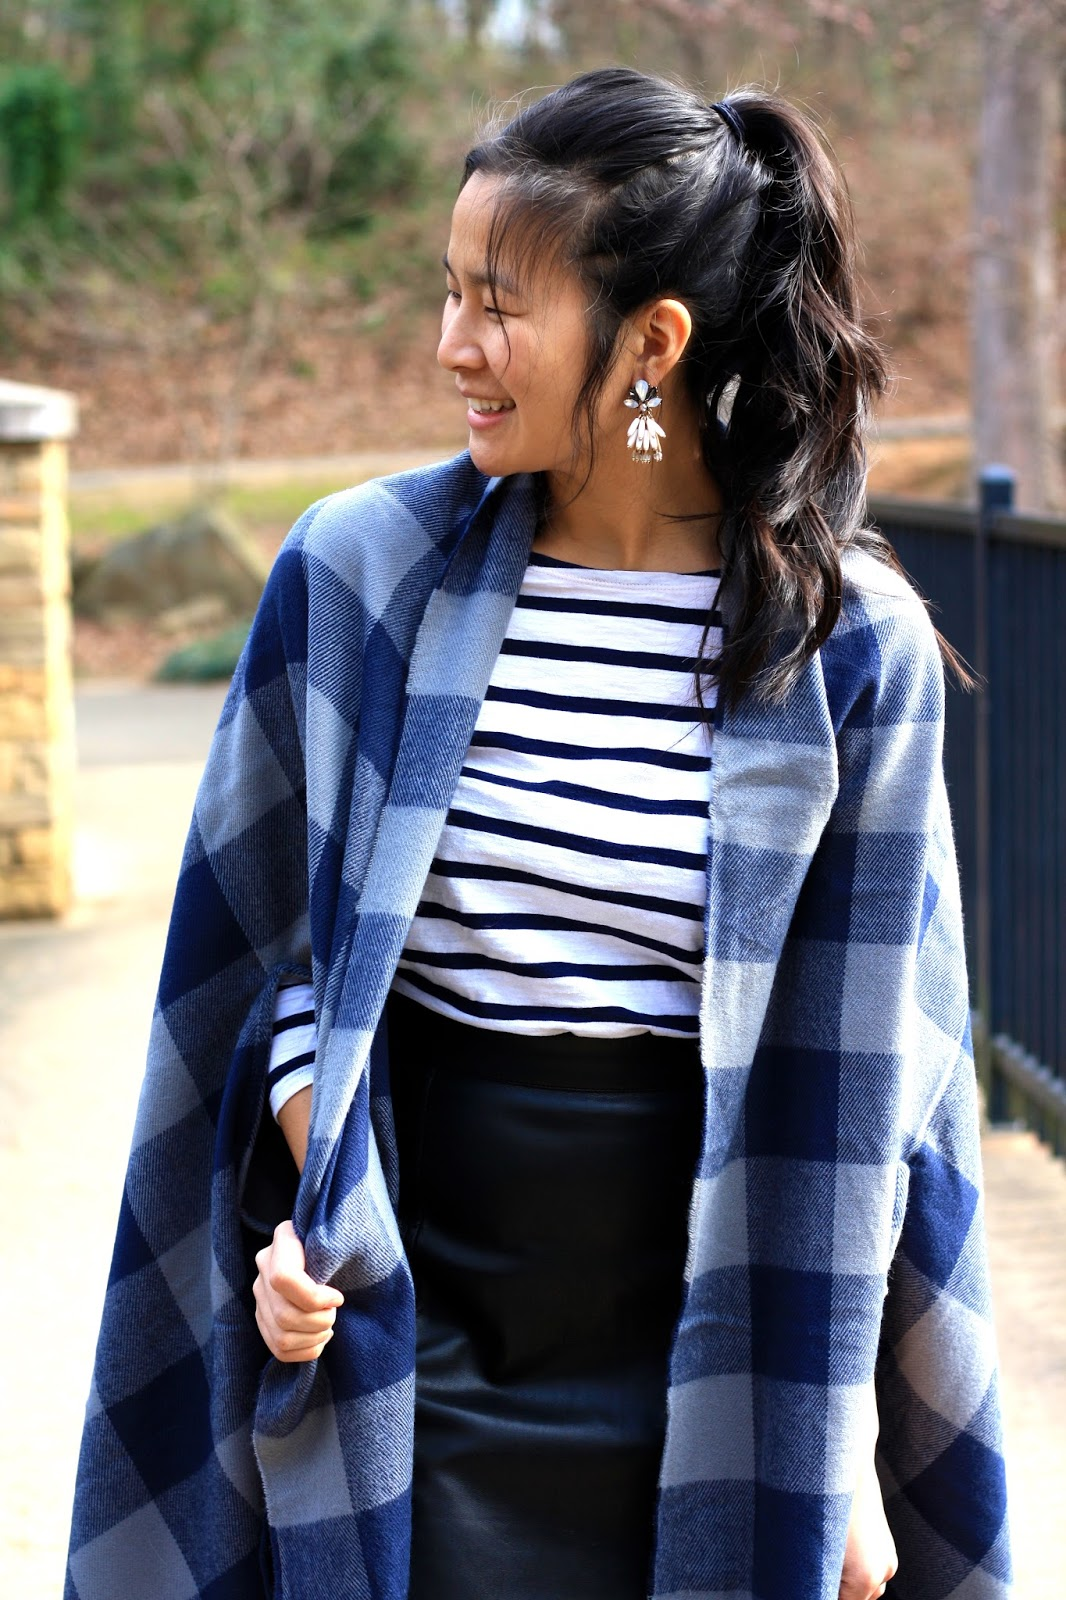 Stepping out of my comfort zone - blue and white pattern mixing outfit